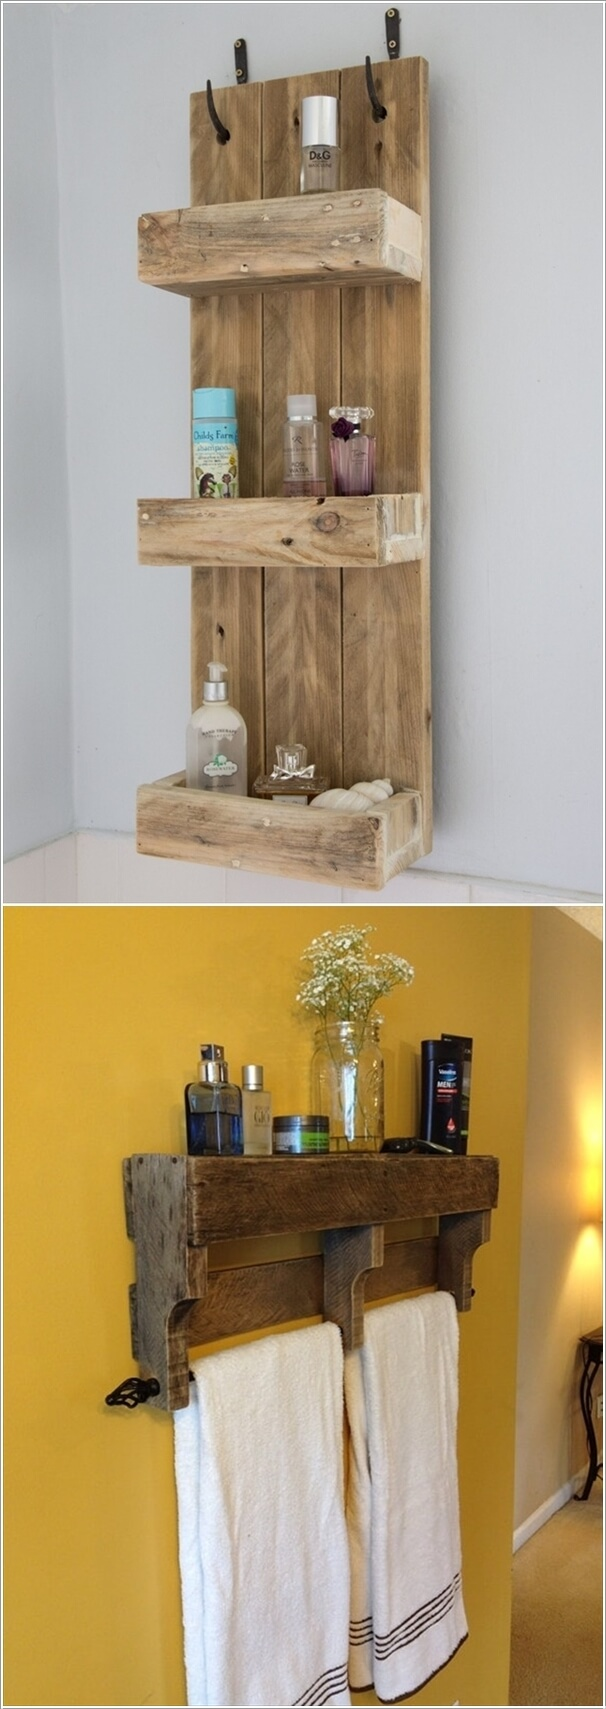 Stupendous Recycle Pallet Wood Very Less Money Create Wall Storage Bathroom Your Bathroom Small Bathrooms Building Shelves Build Shelves Diy Shelves Diy Shelves bathroom Homemade Shelves For Bathroom